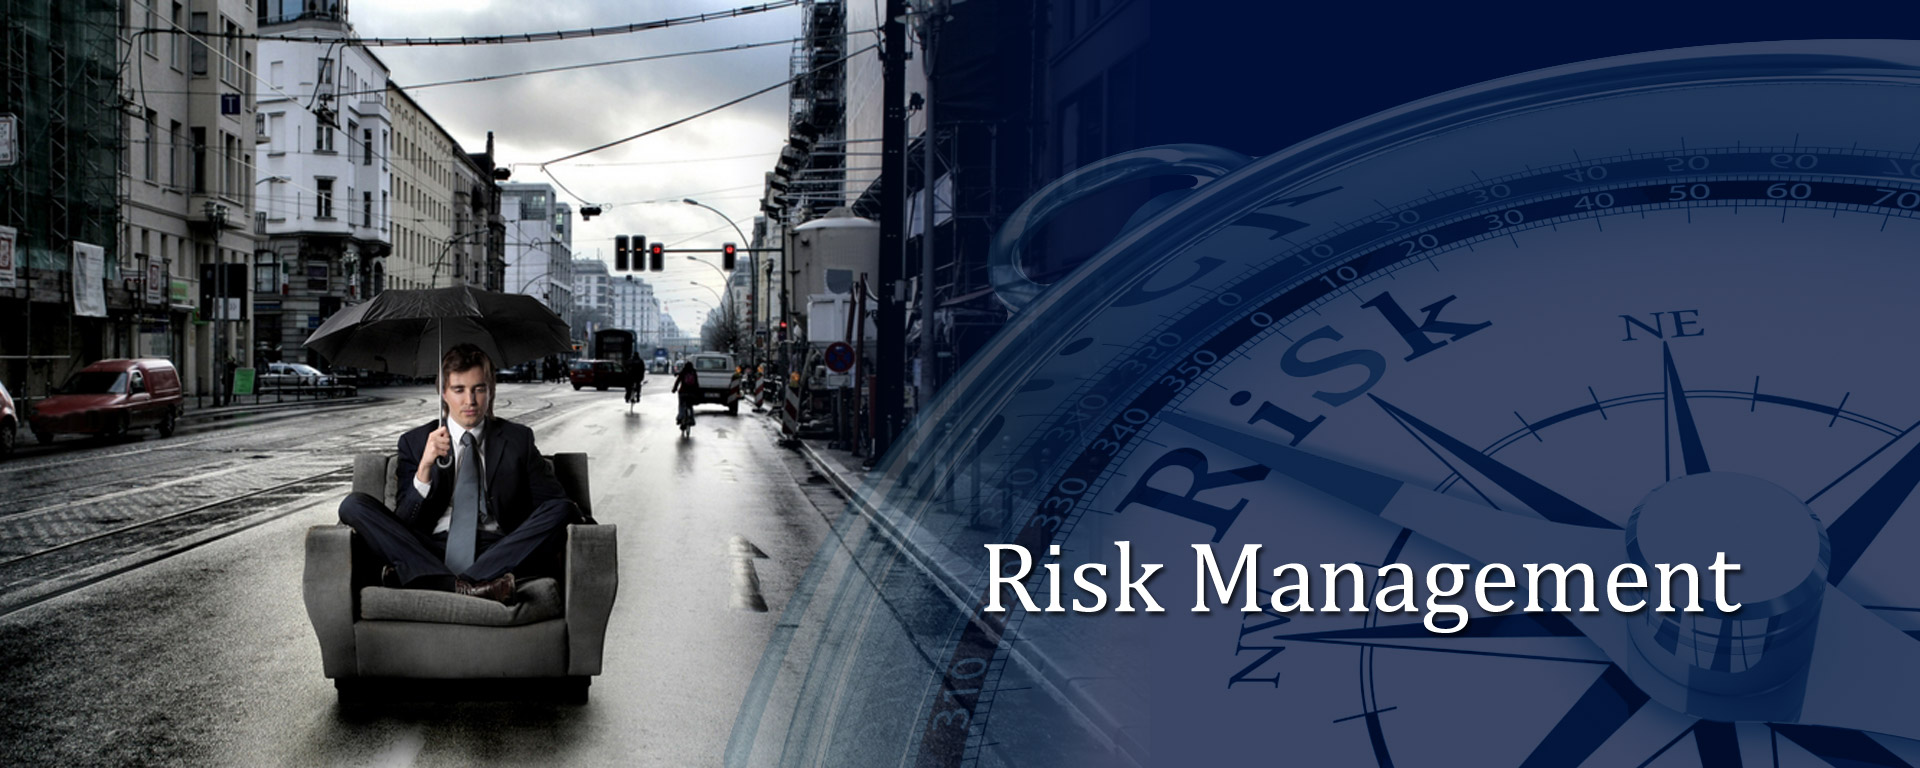 risk-management-slider2